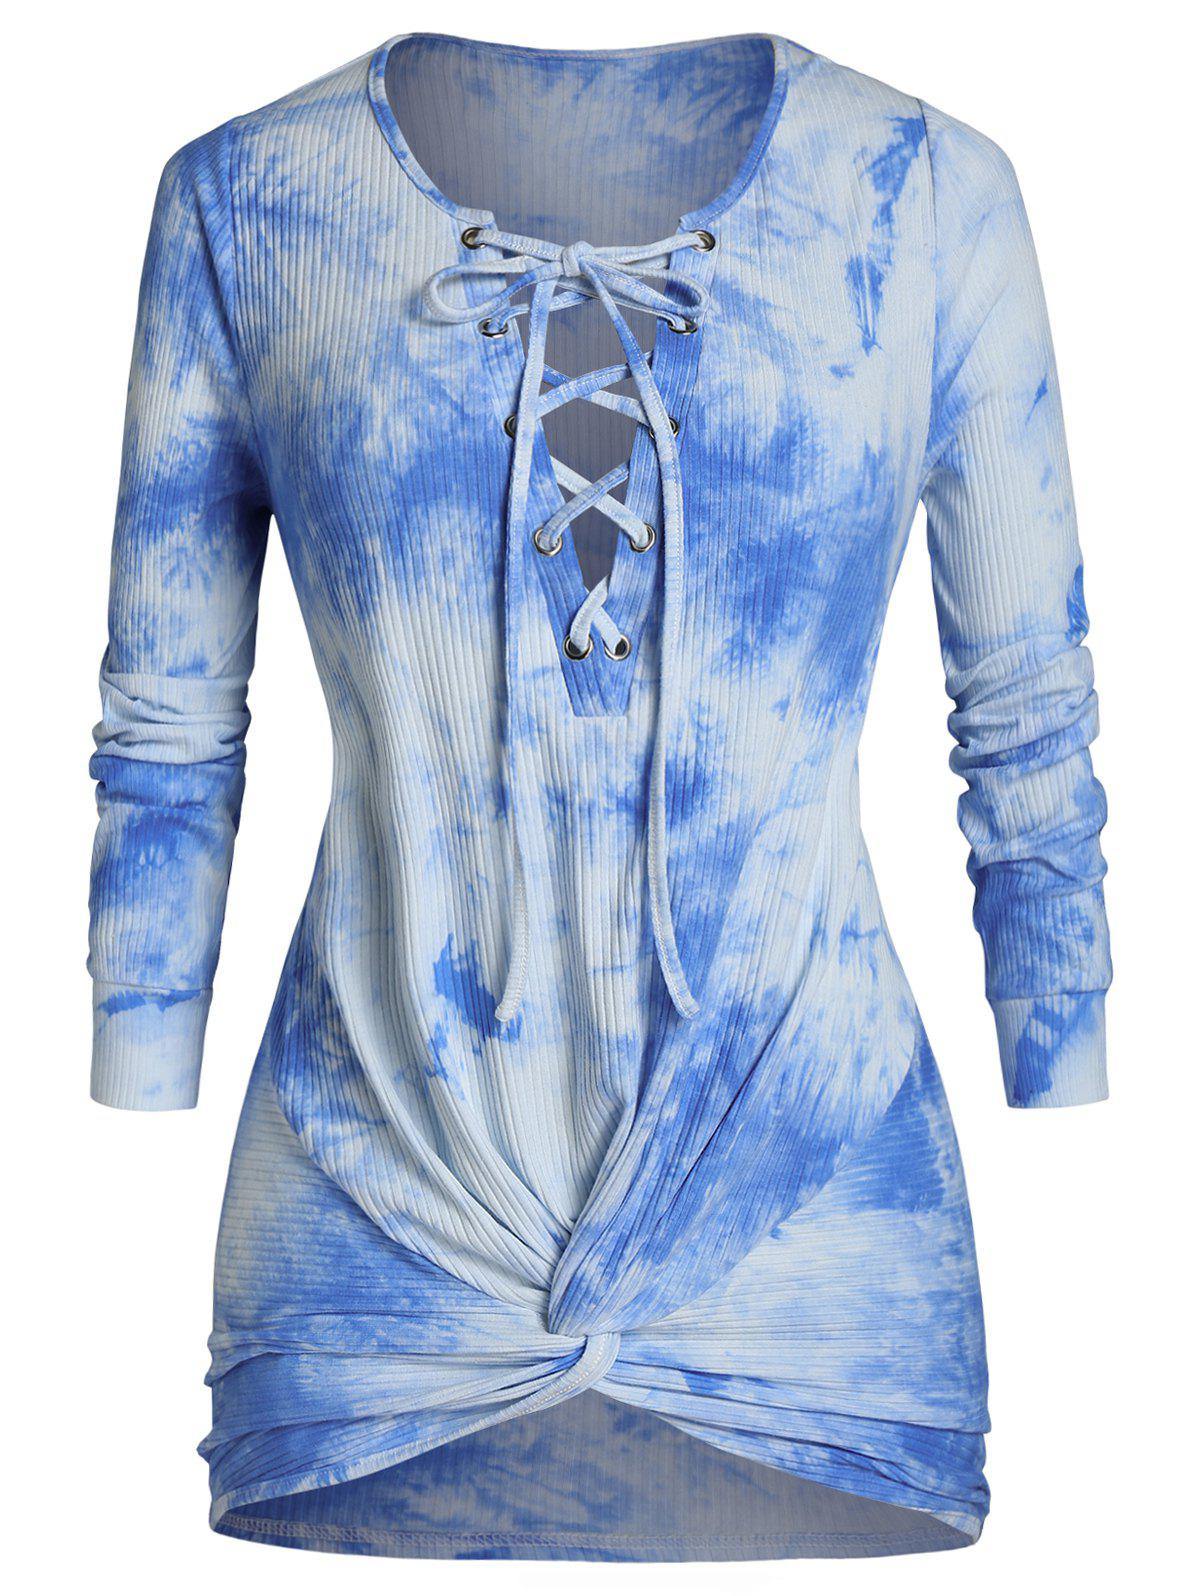 Plus Size Lace Up Tie Dye Front Twist Knitwear - DODGER BLUE 2X